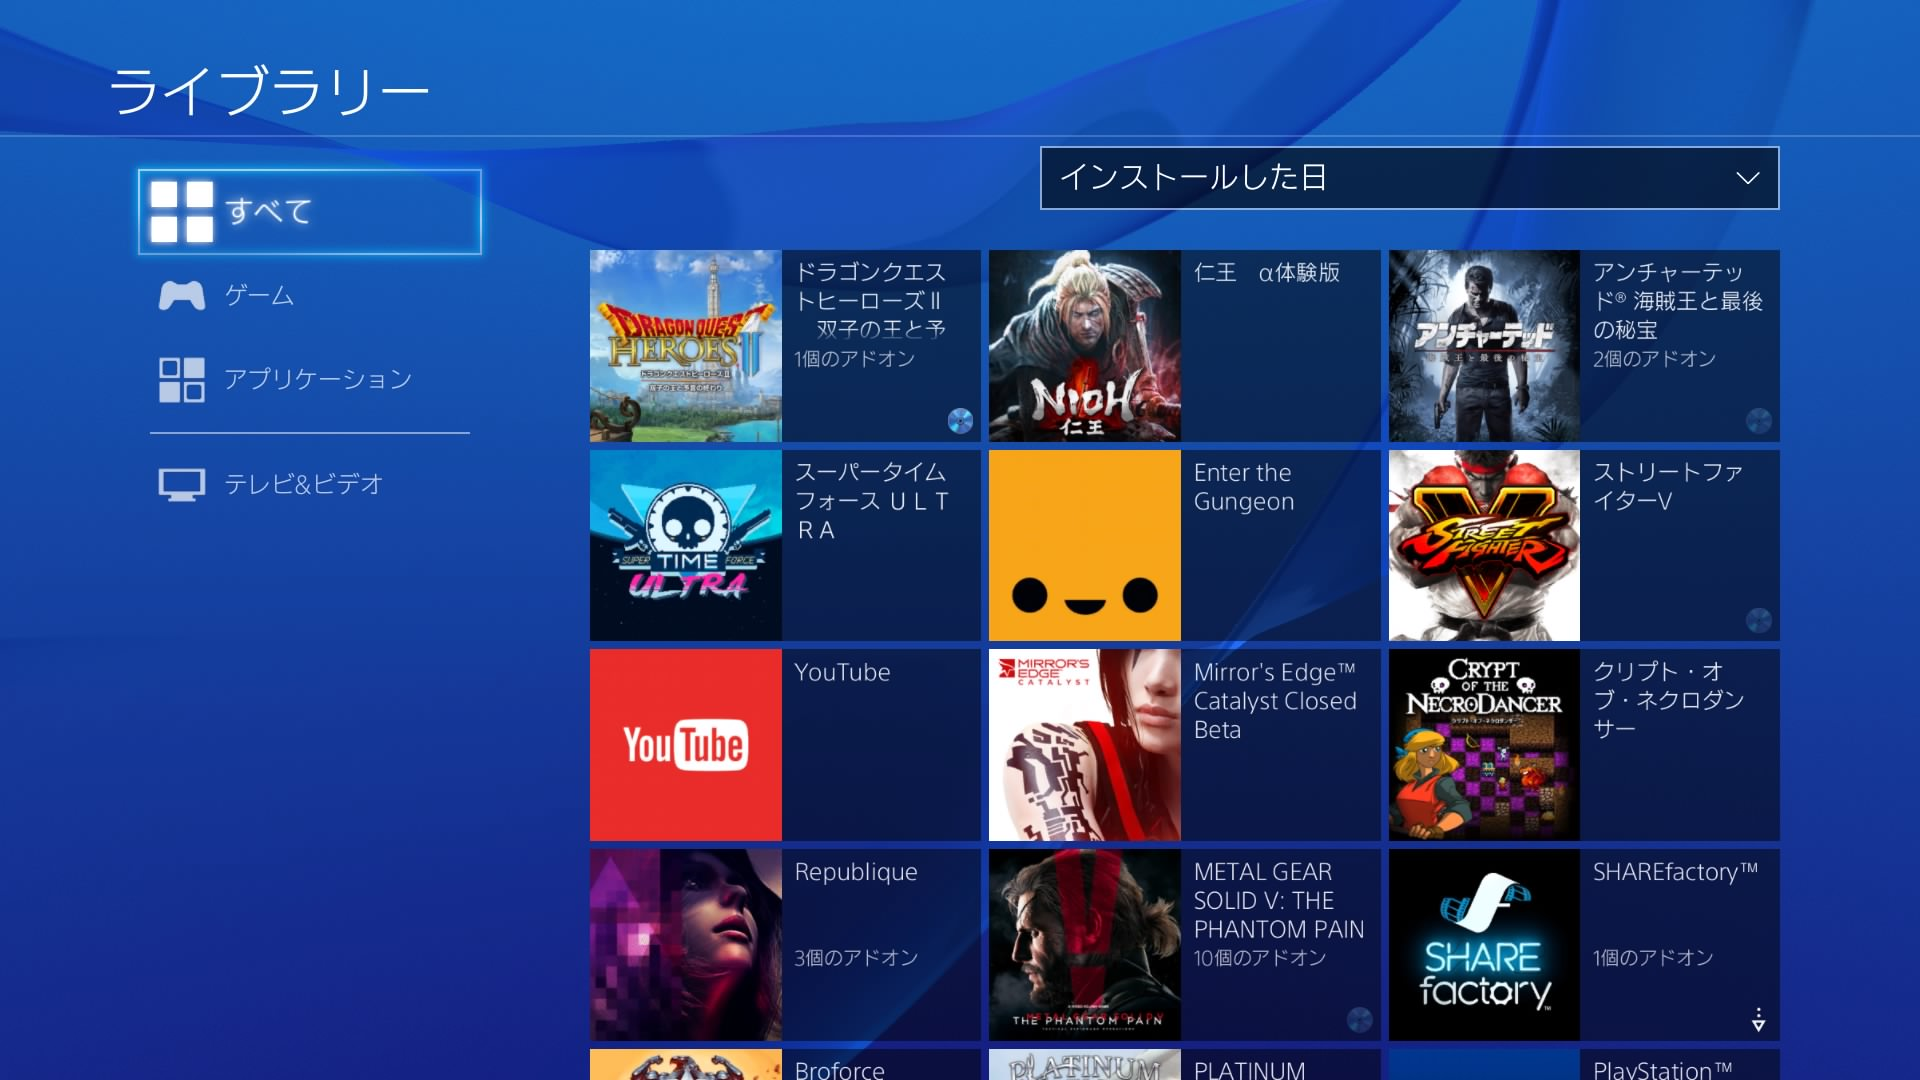 How to download product code contents for playstation 4 7